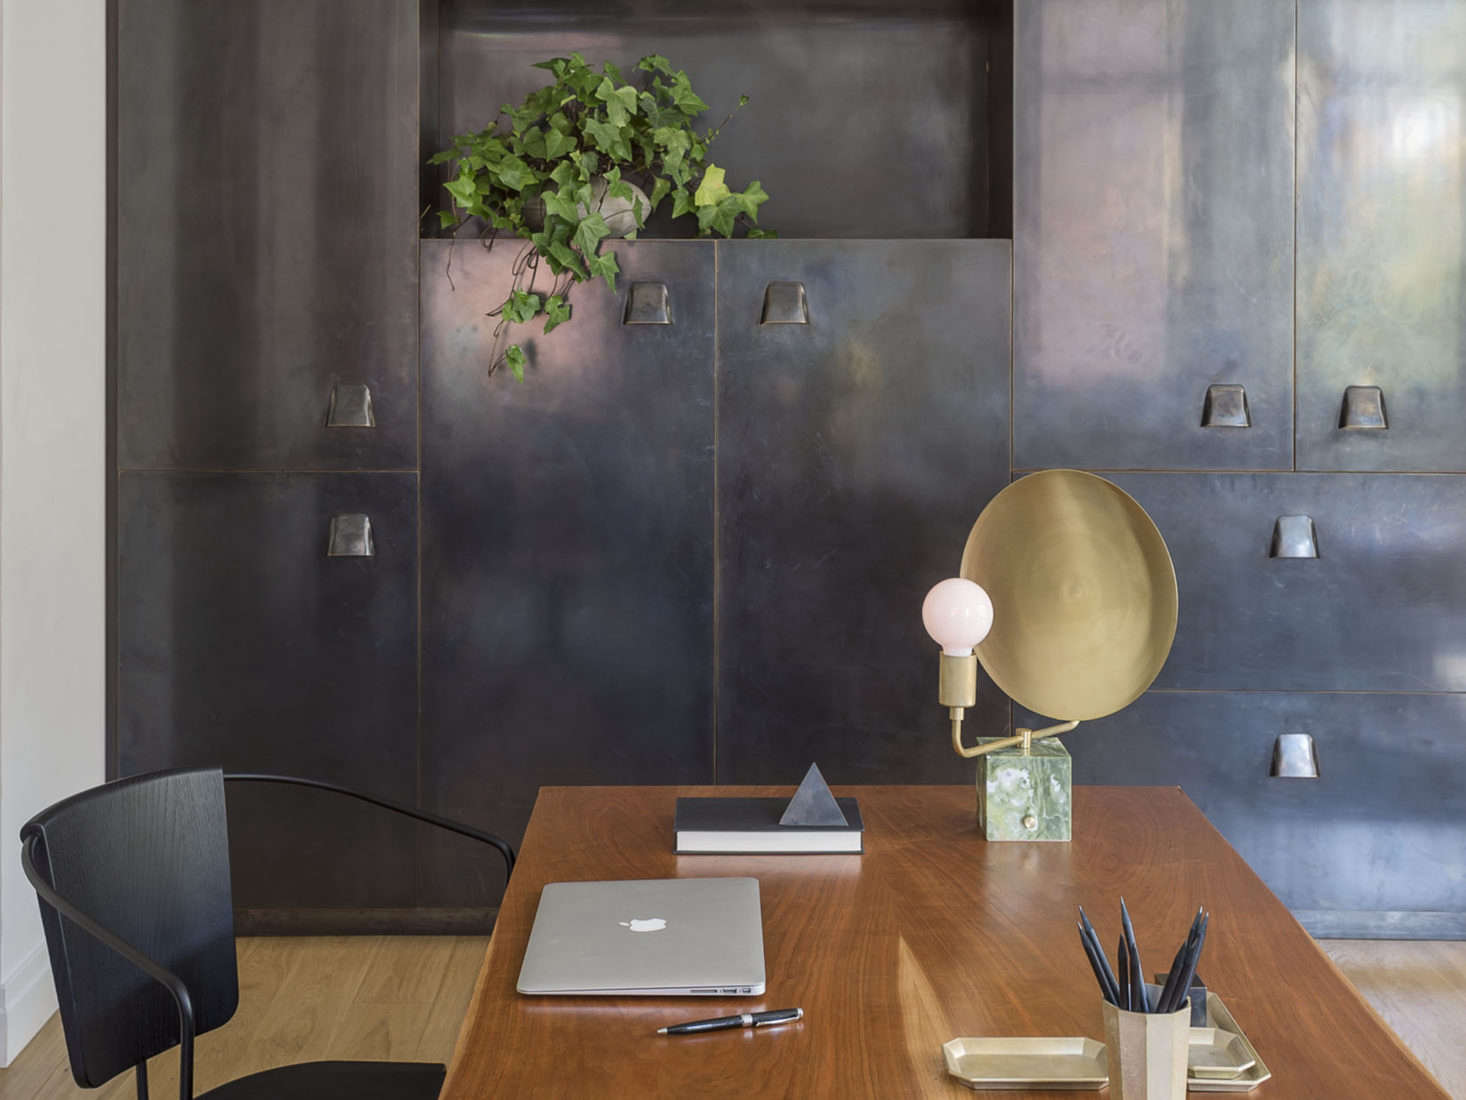 Blackened brass cabinets in an apartment remodel by Workstead, Matthew Williams photo | Remodelista